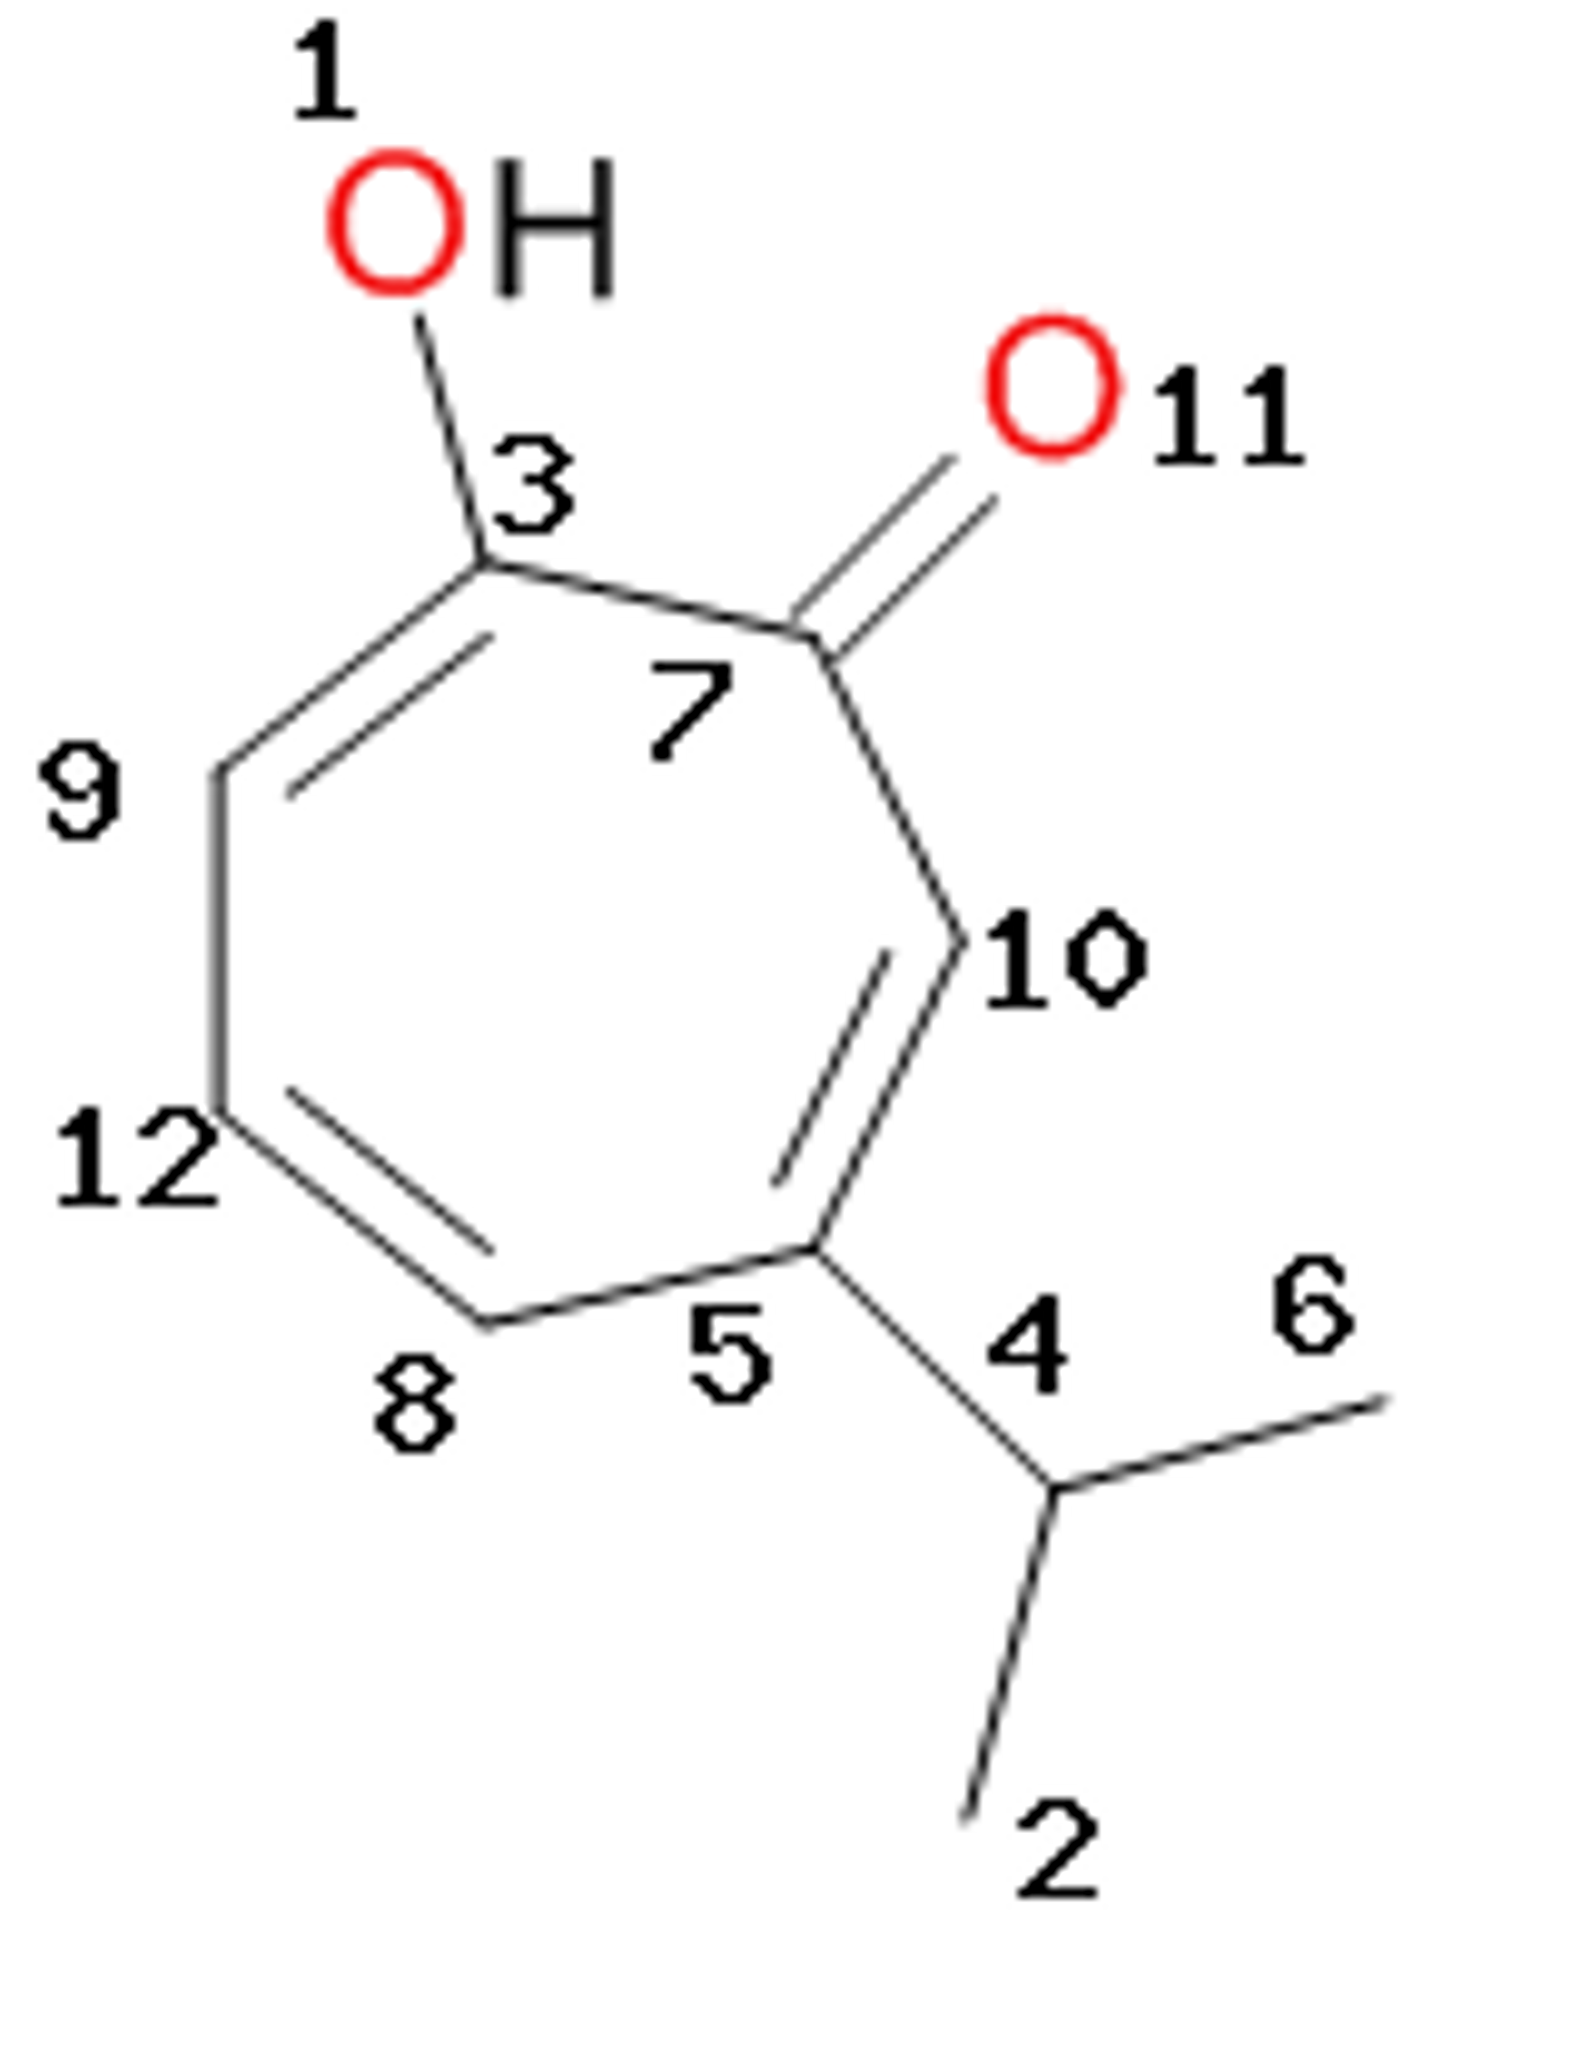 The molecular structure of hinokitiol is represent chegg oh 011 7 10 12 54 6 2 3 92 pooptronica